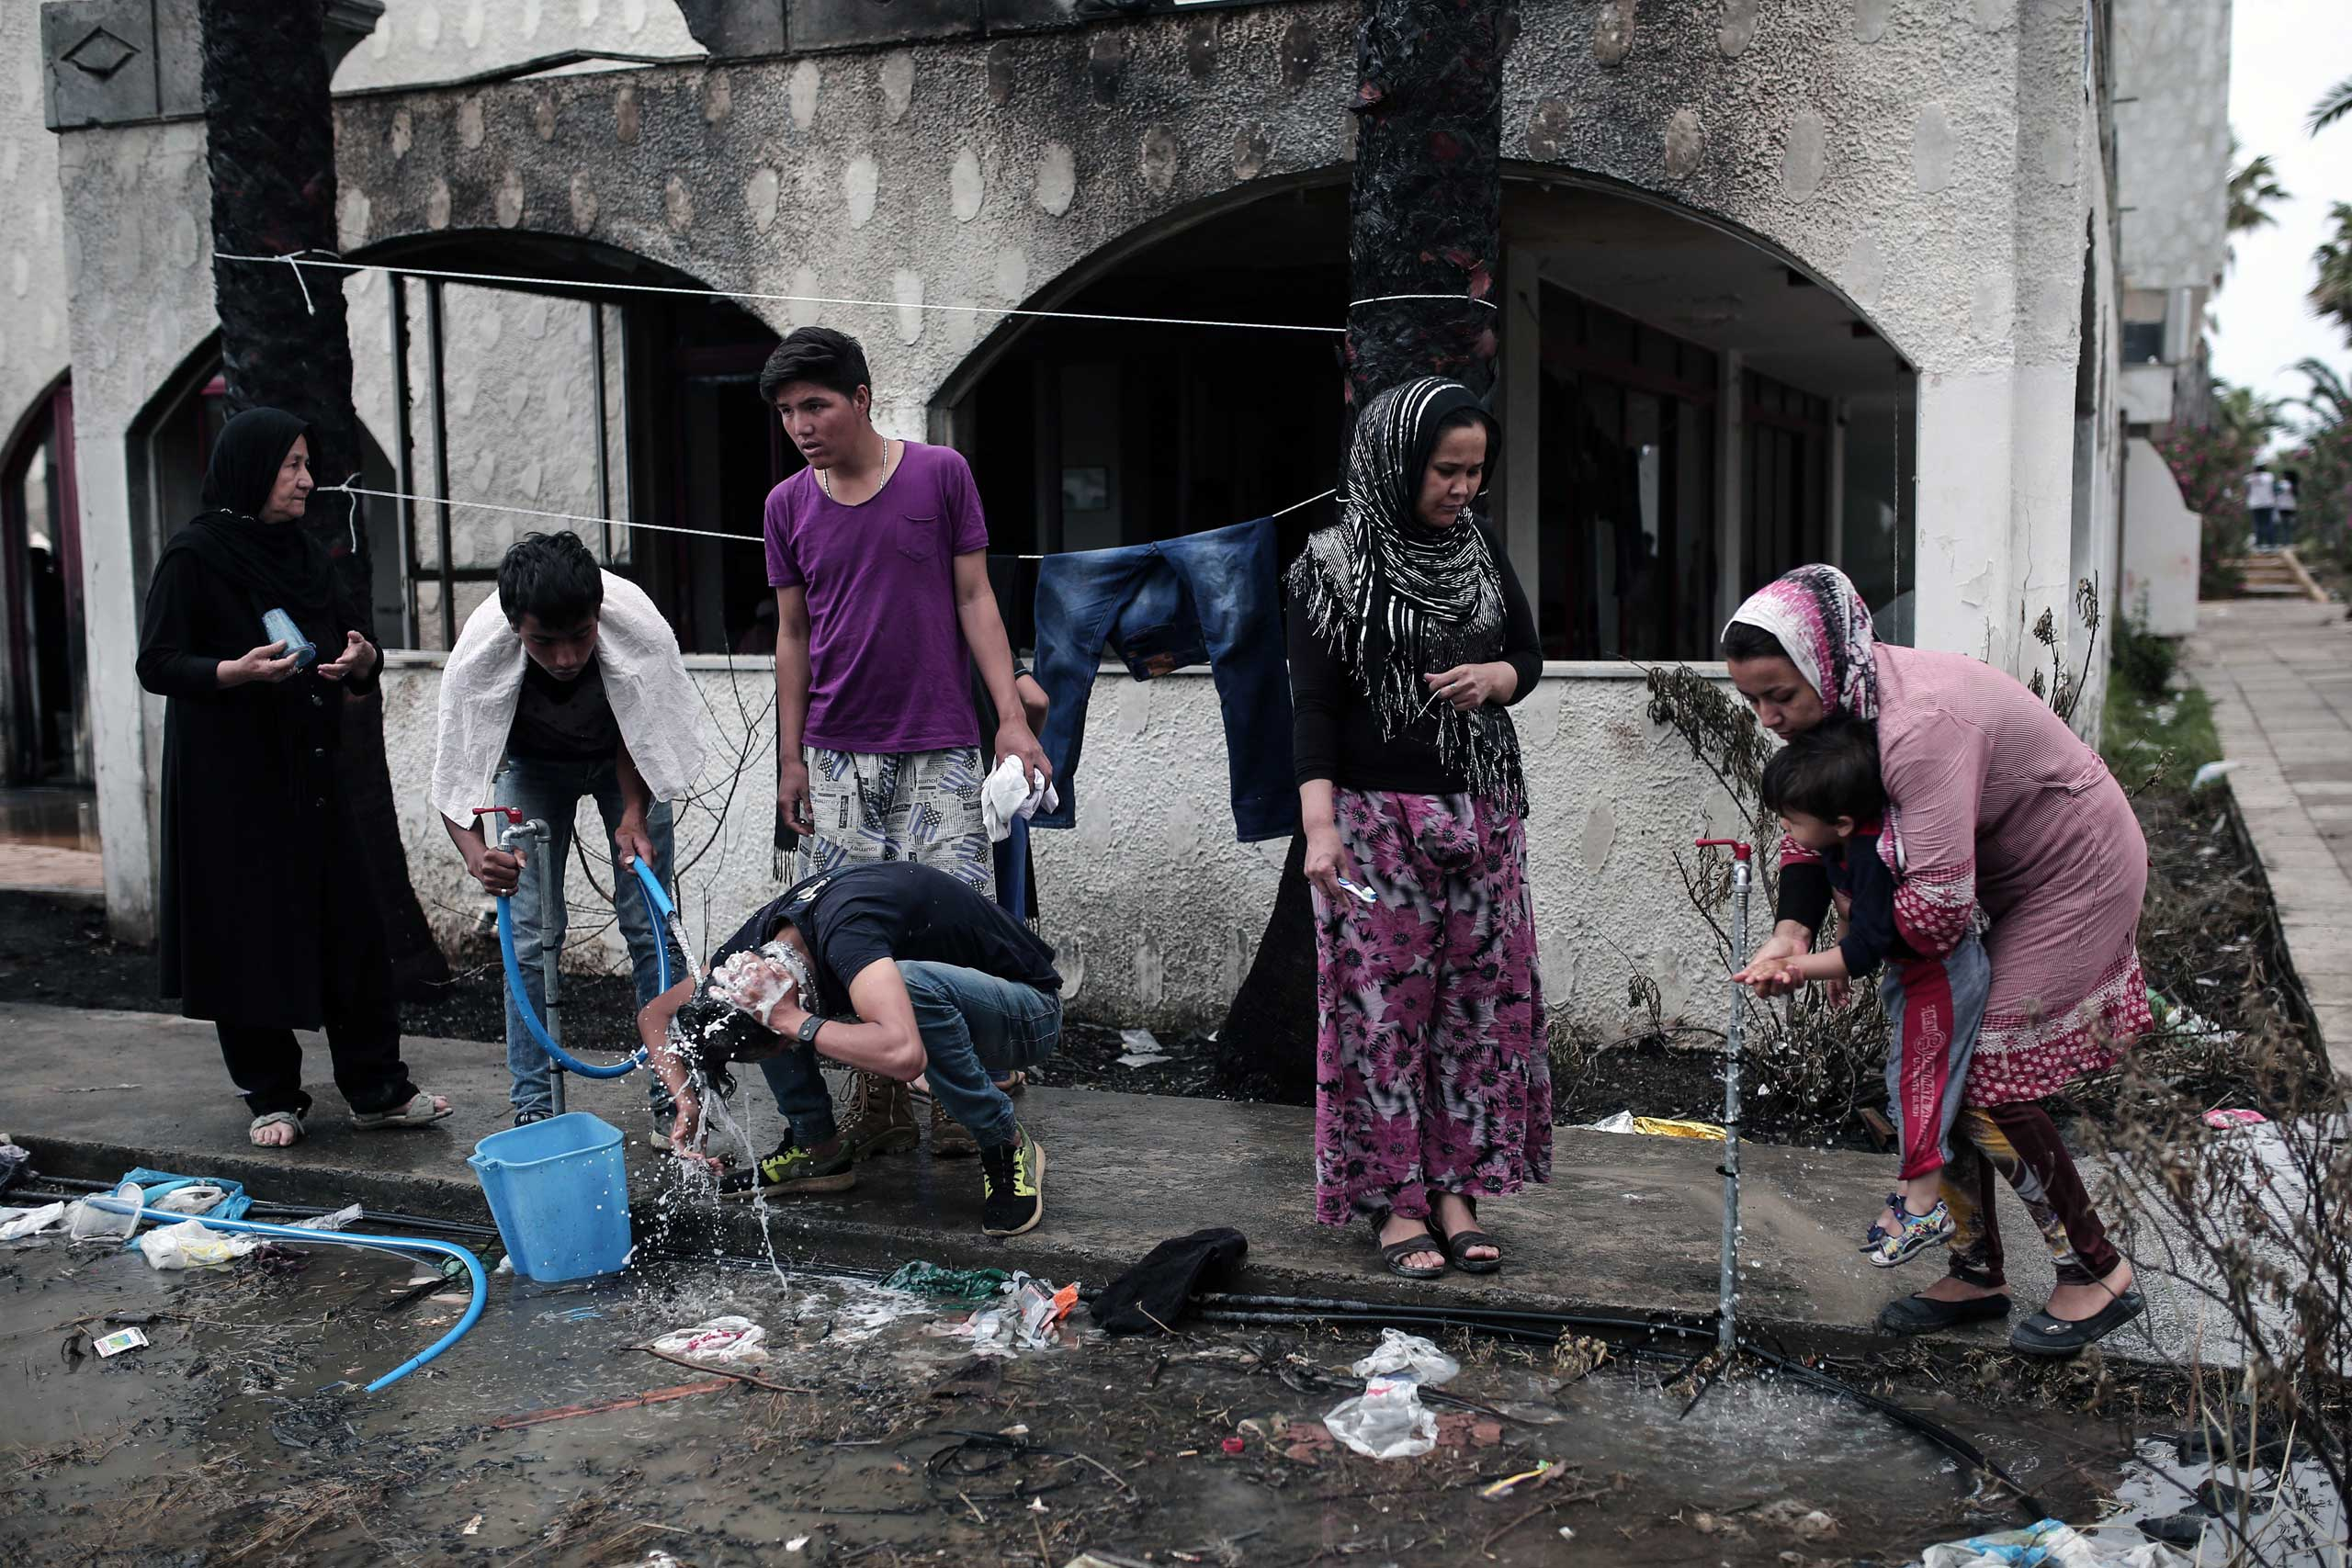 Afghan migrants wash next to a deserted hotel, where hundreds of migrants have found temporary shelter, on the Greek island of Kos on May 27, 2015.